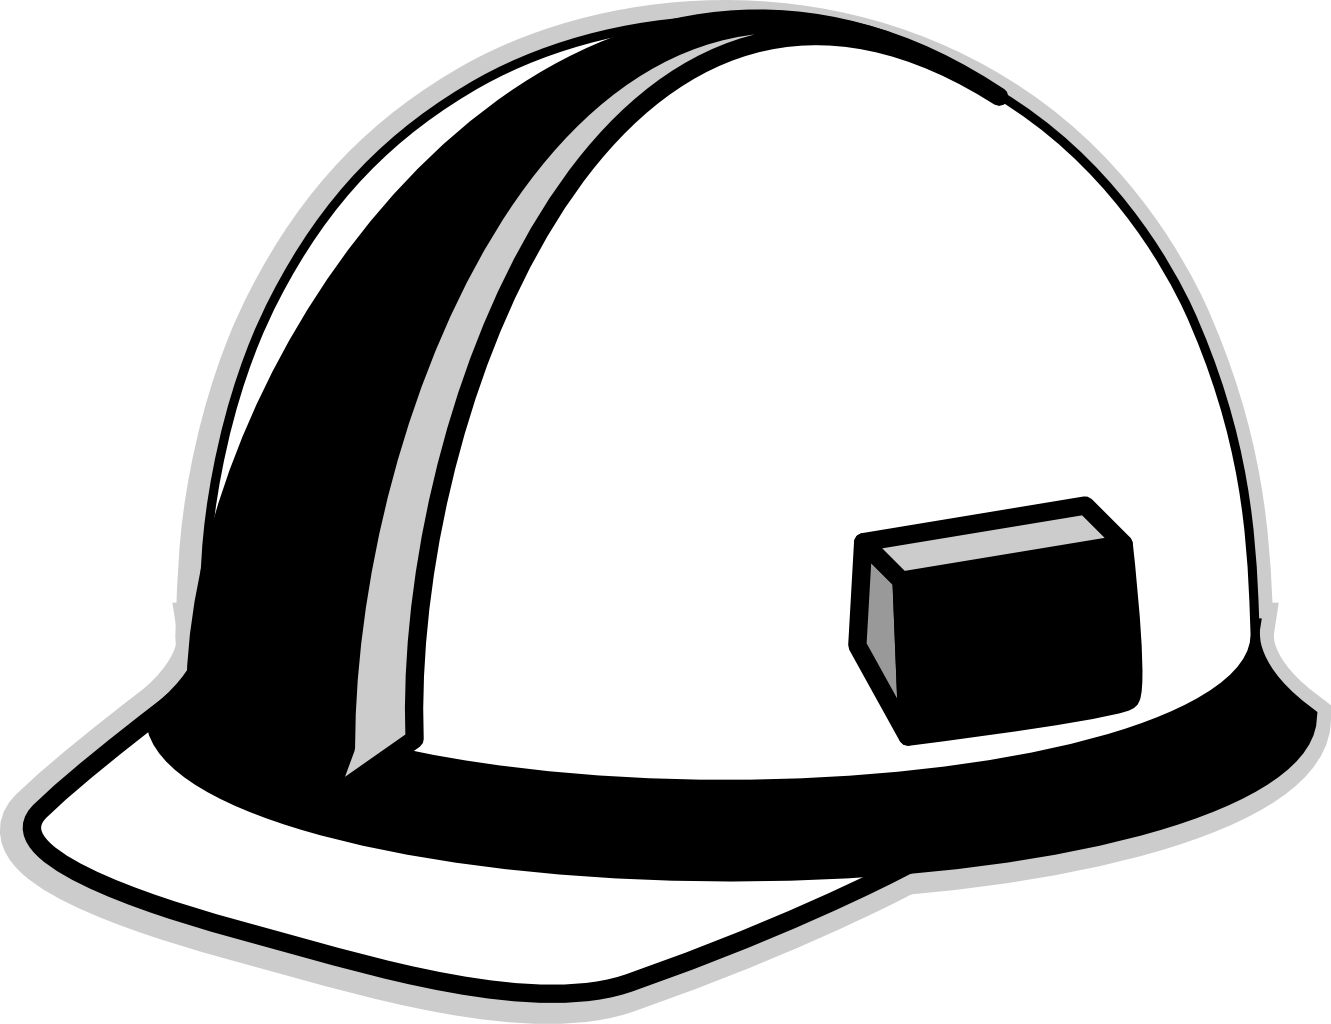 Cartoon Hard Hats - ClipArt Best